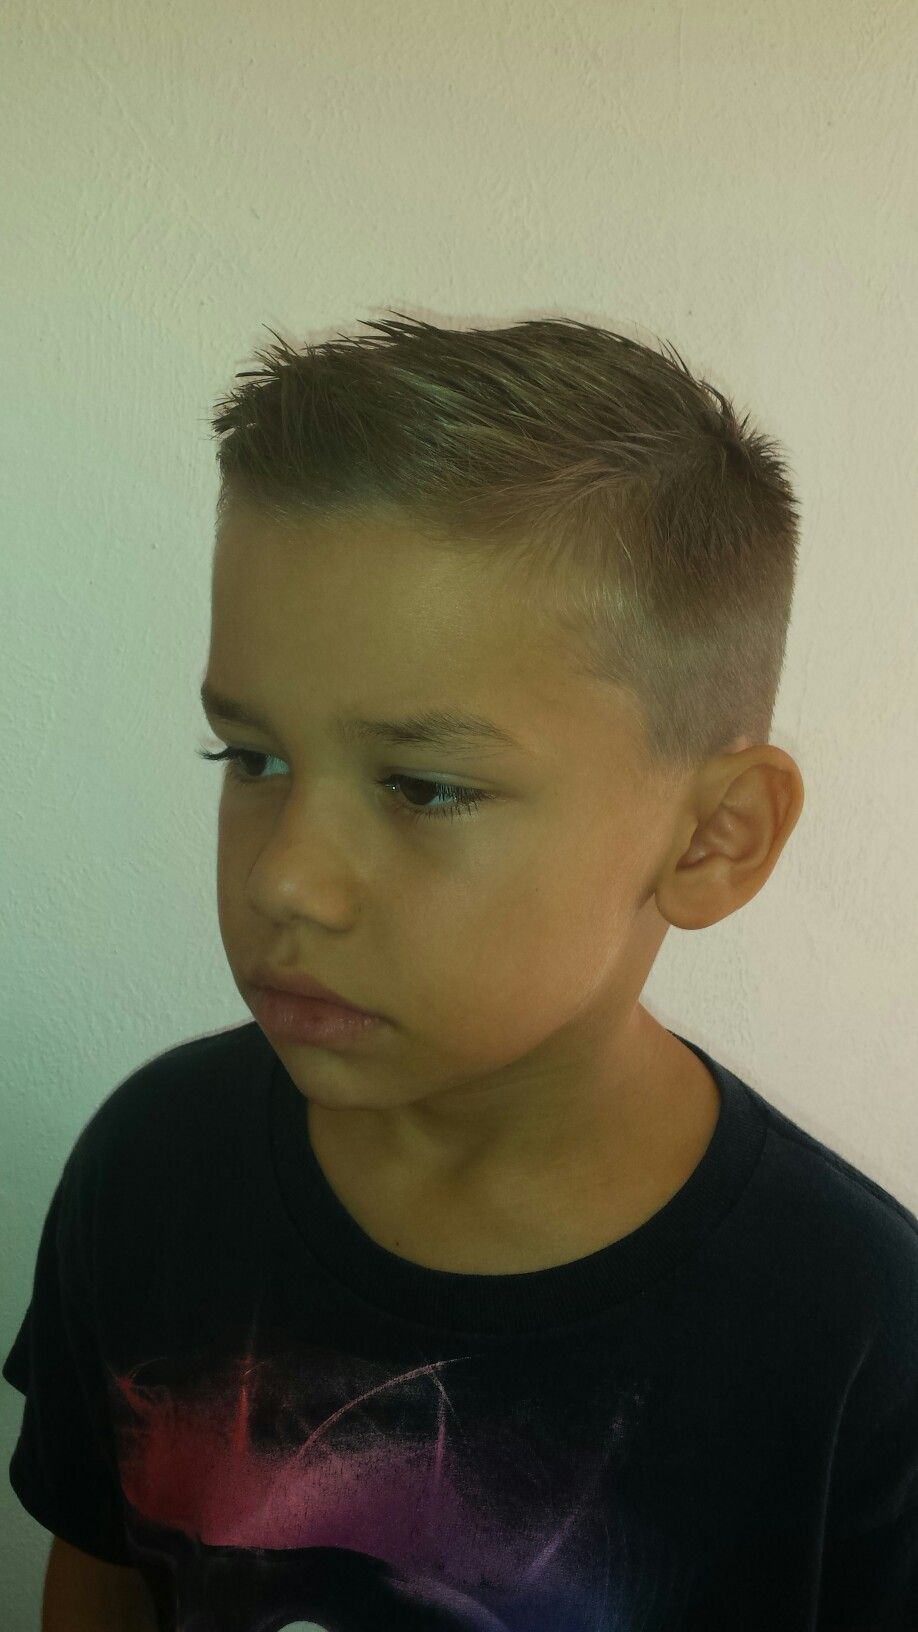 Boys Haircuts To Treat Your Boy Like A Man